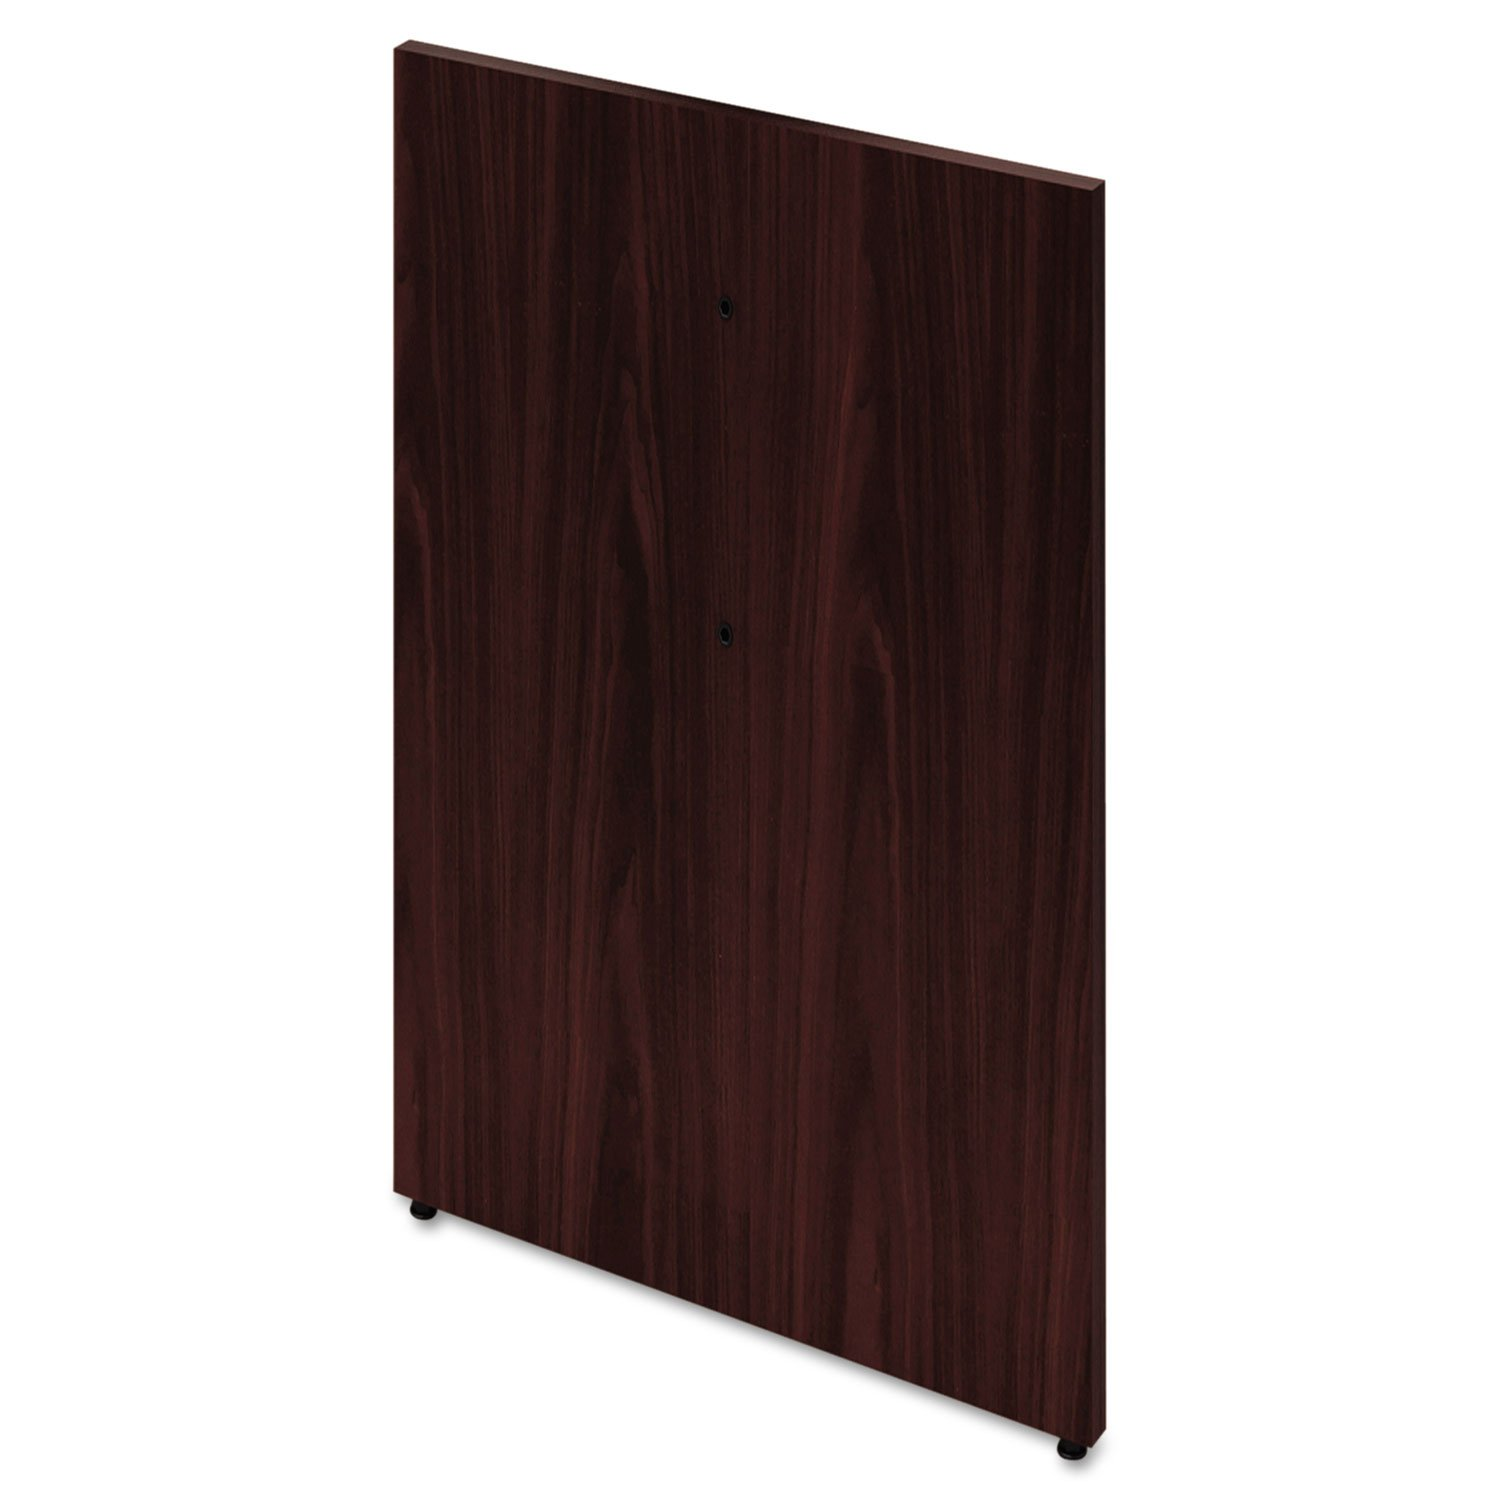 HON Preside HTLPBS Conference Table Panel Mid-Base (Single Pack) - 28.4quot; Height - Mahogany